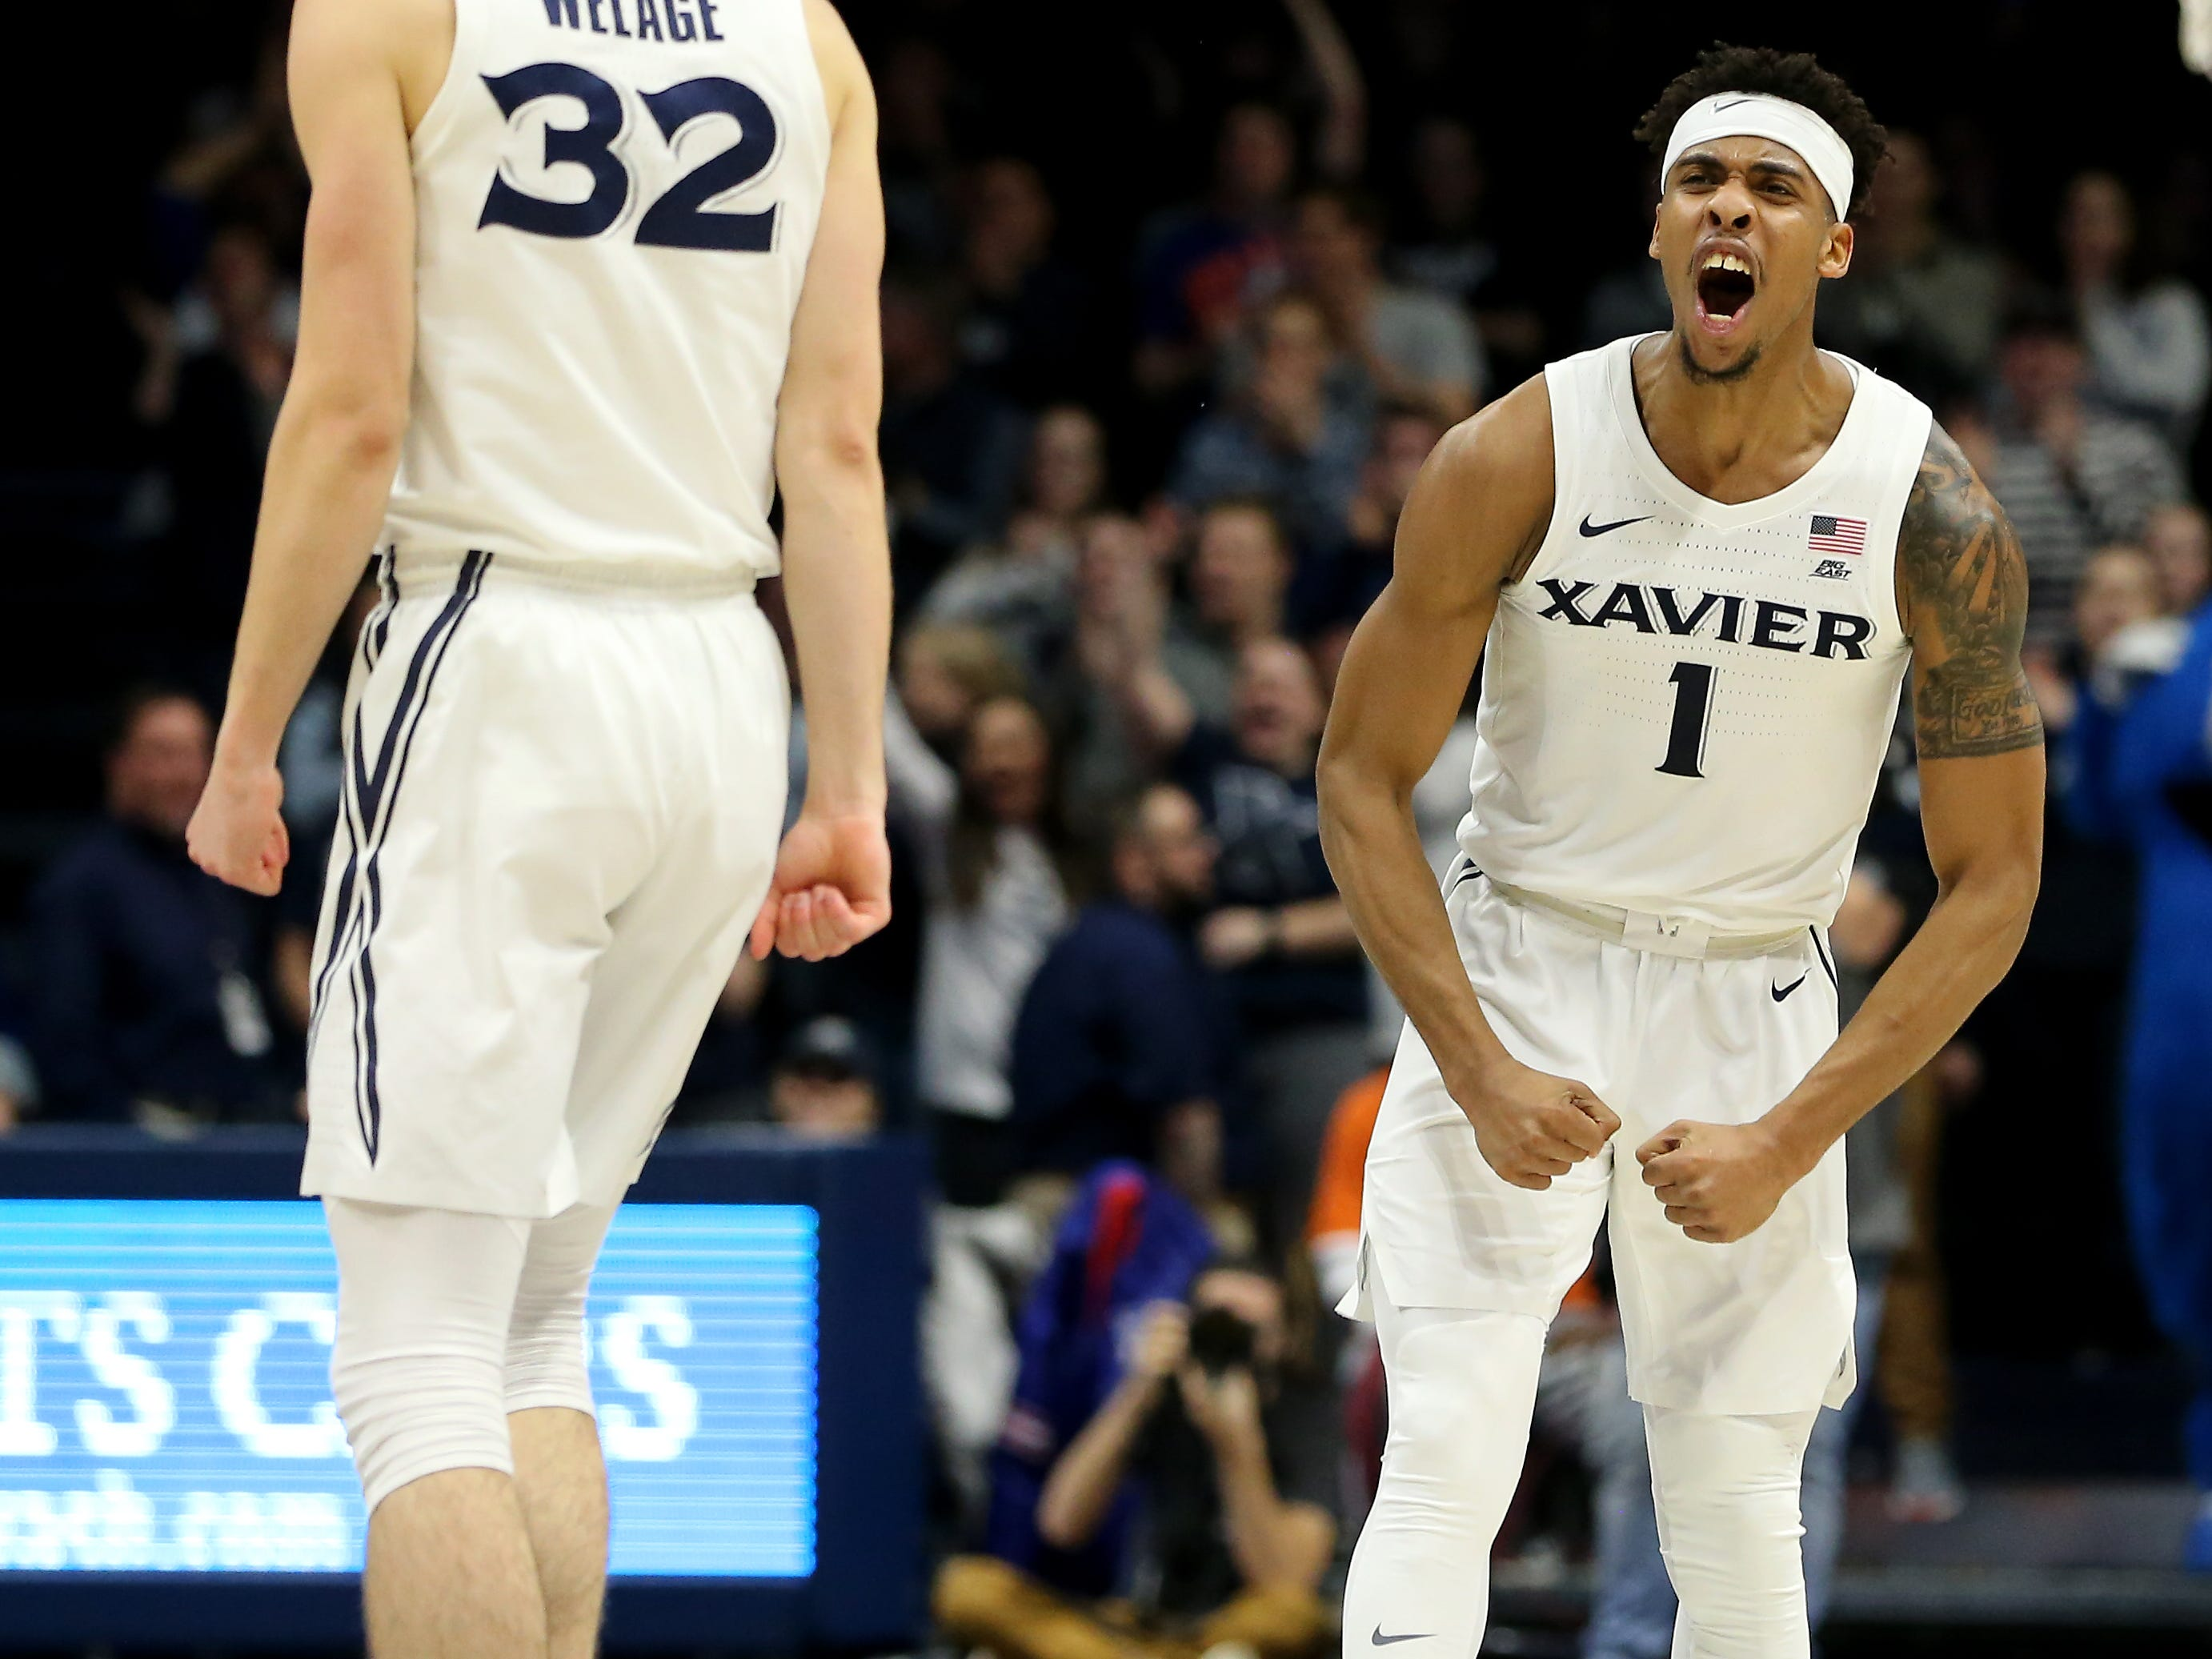 Xavier Musketeers guard Paul Scruggs (1) celebrates with Xavier Musketeers forward Ryan Welage (32) after scoring a 3-point basket in the second half of an NCAA college basketball game against the Seton Hall Pirates, Wednesday, Jan. 2, 2019, at the Cintas Center in Cincinnati. Seton Hall won 80-70.